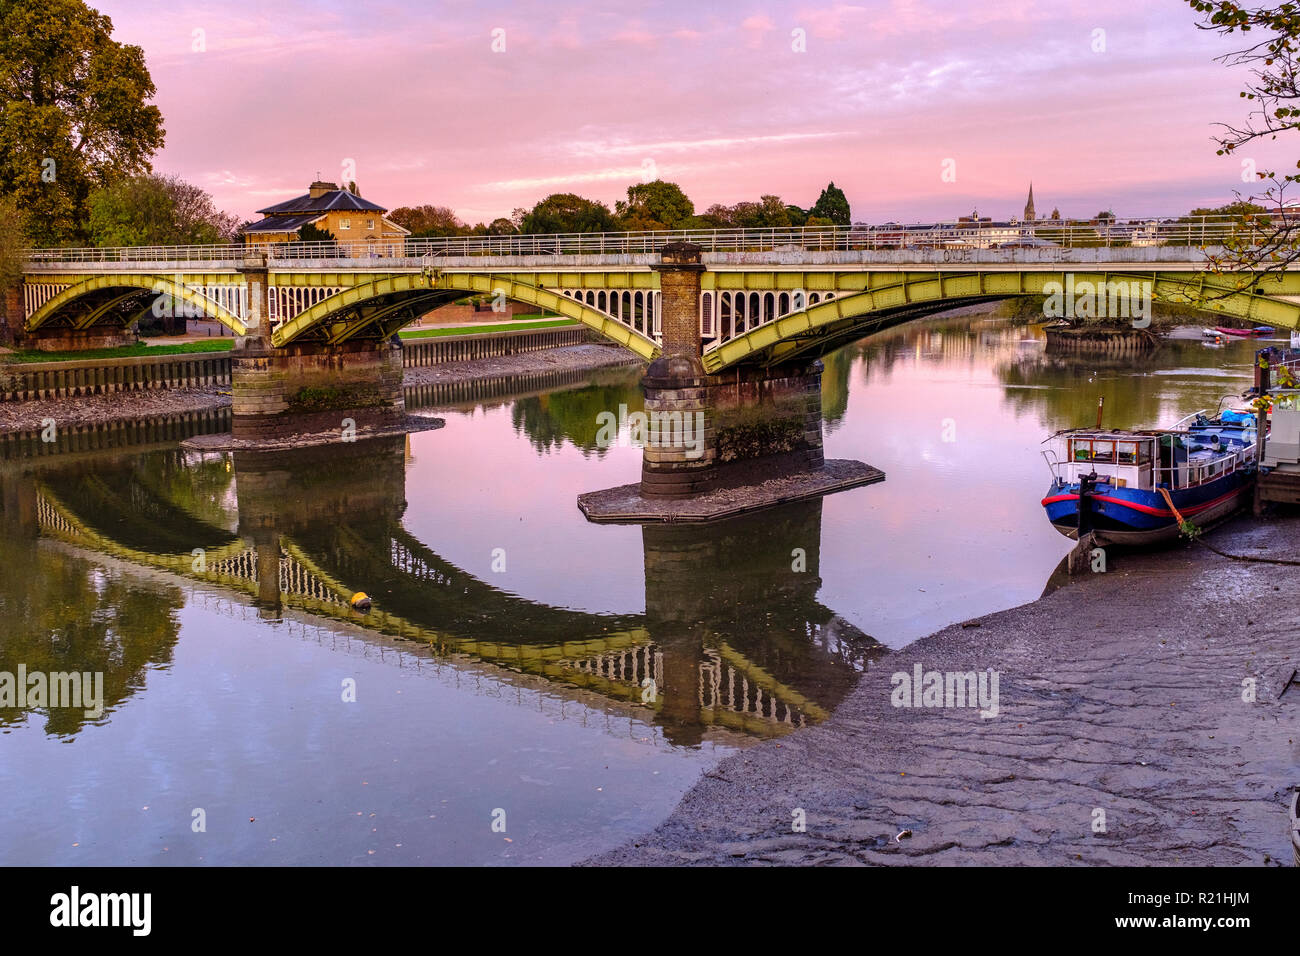 England,Ricgmond-Upon-Thames.River Thames at low tide and Twickenham railway Bridge - Stock Image